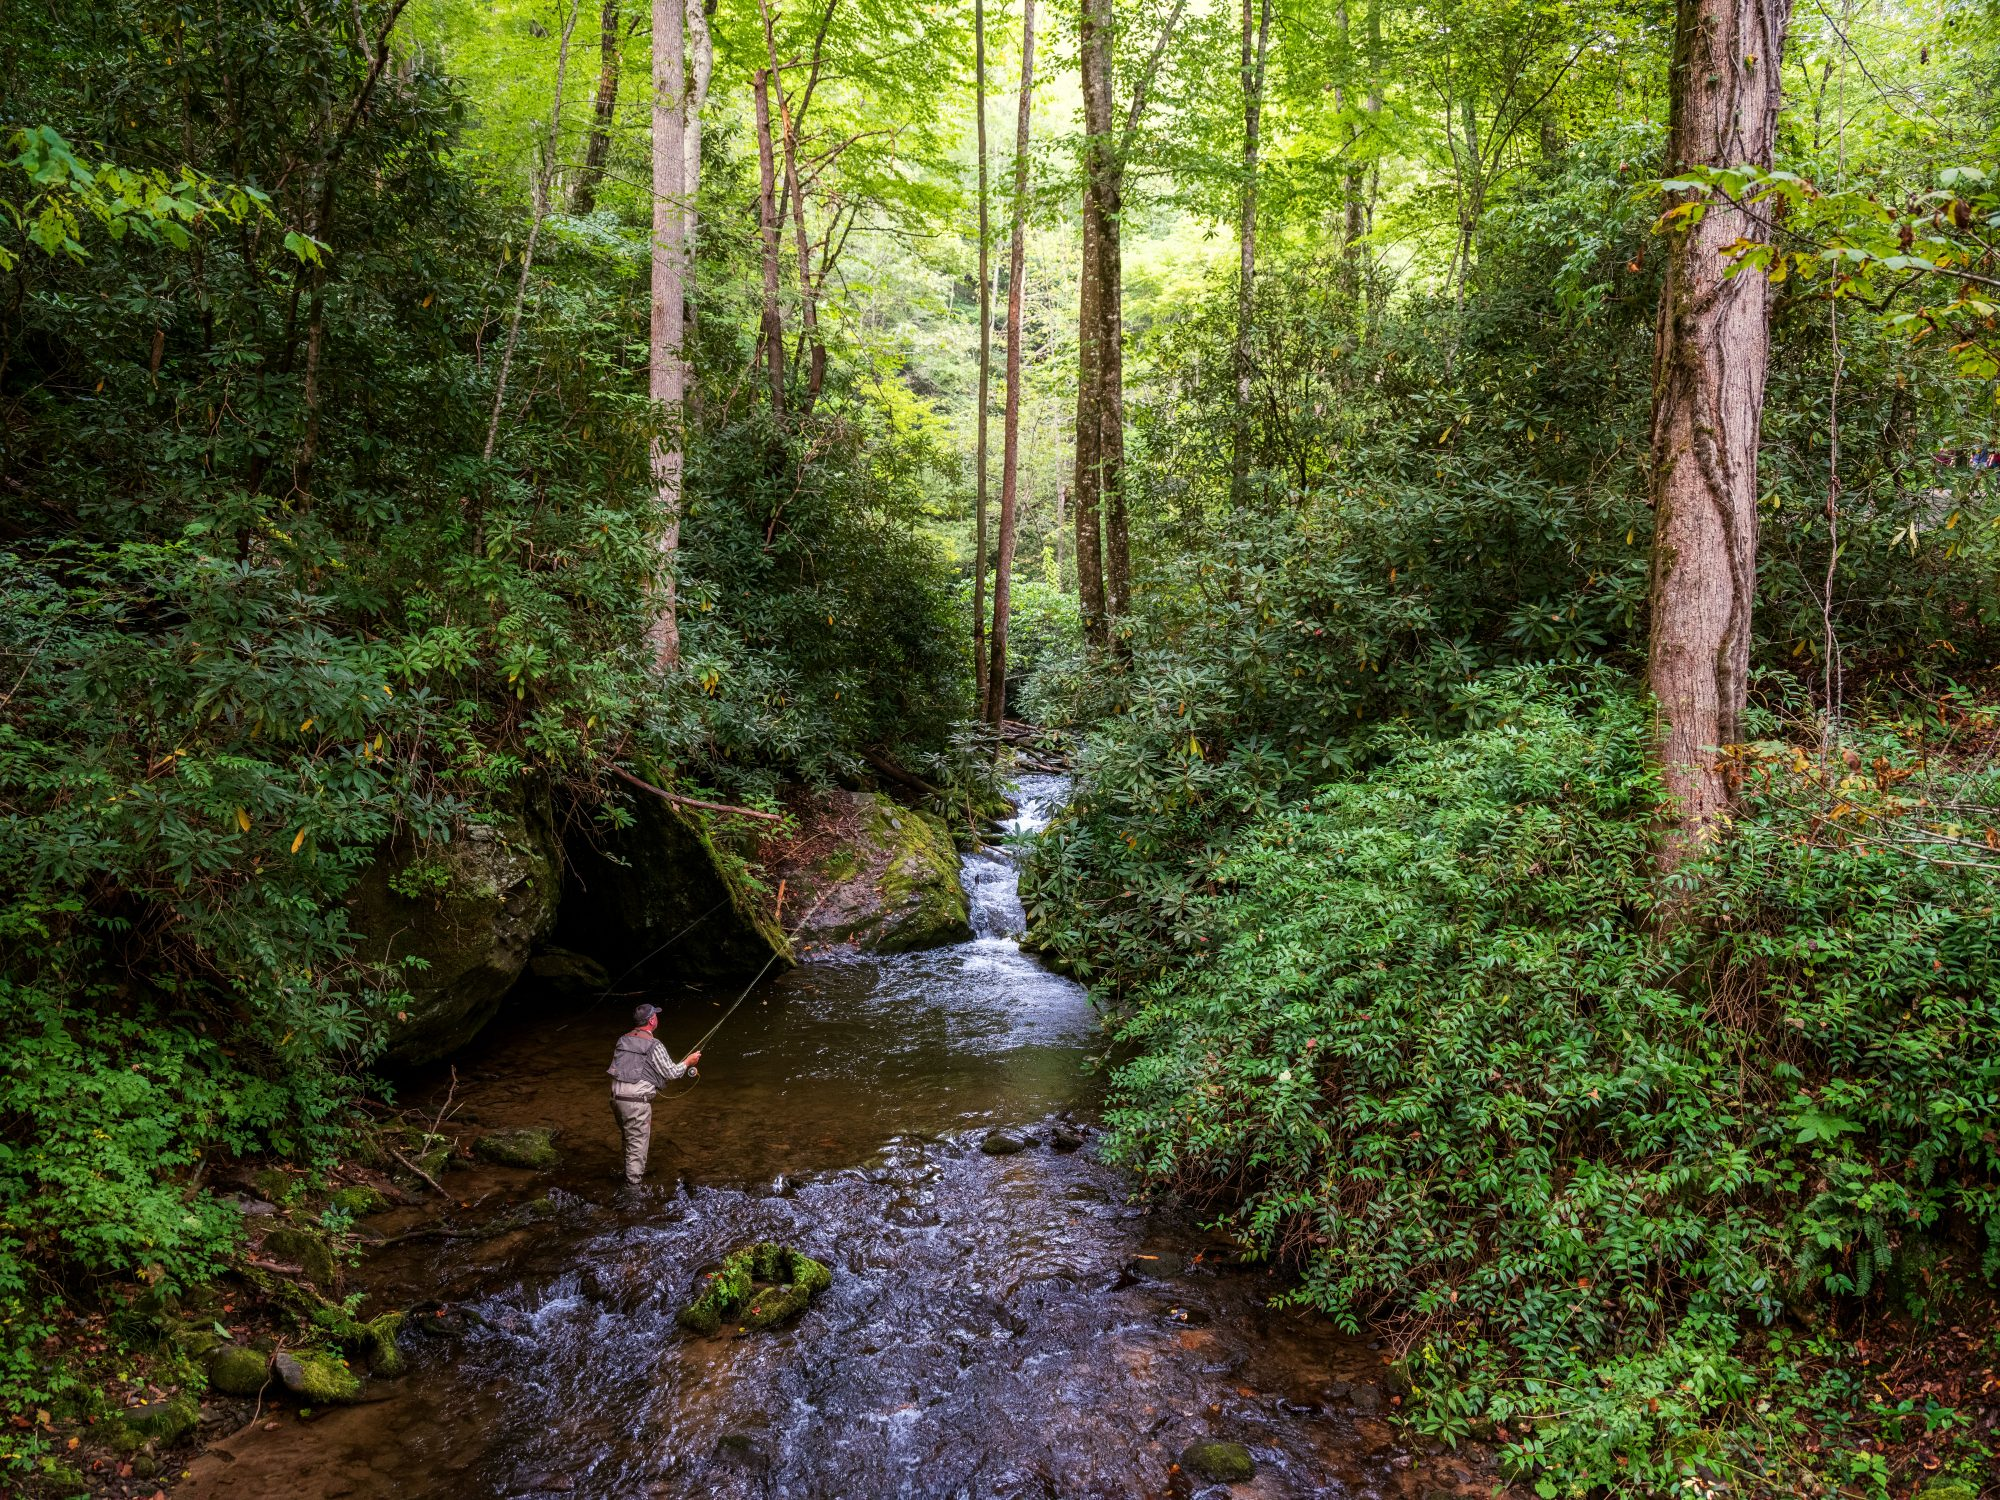 Fishing guide Eugene Shuler fly fishing the Smokies near Bryson City, North Carolina.